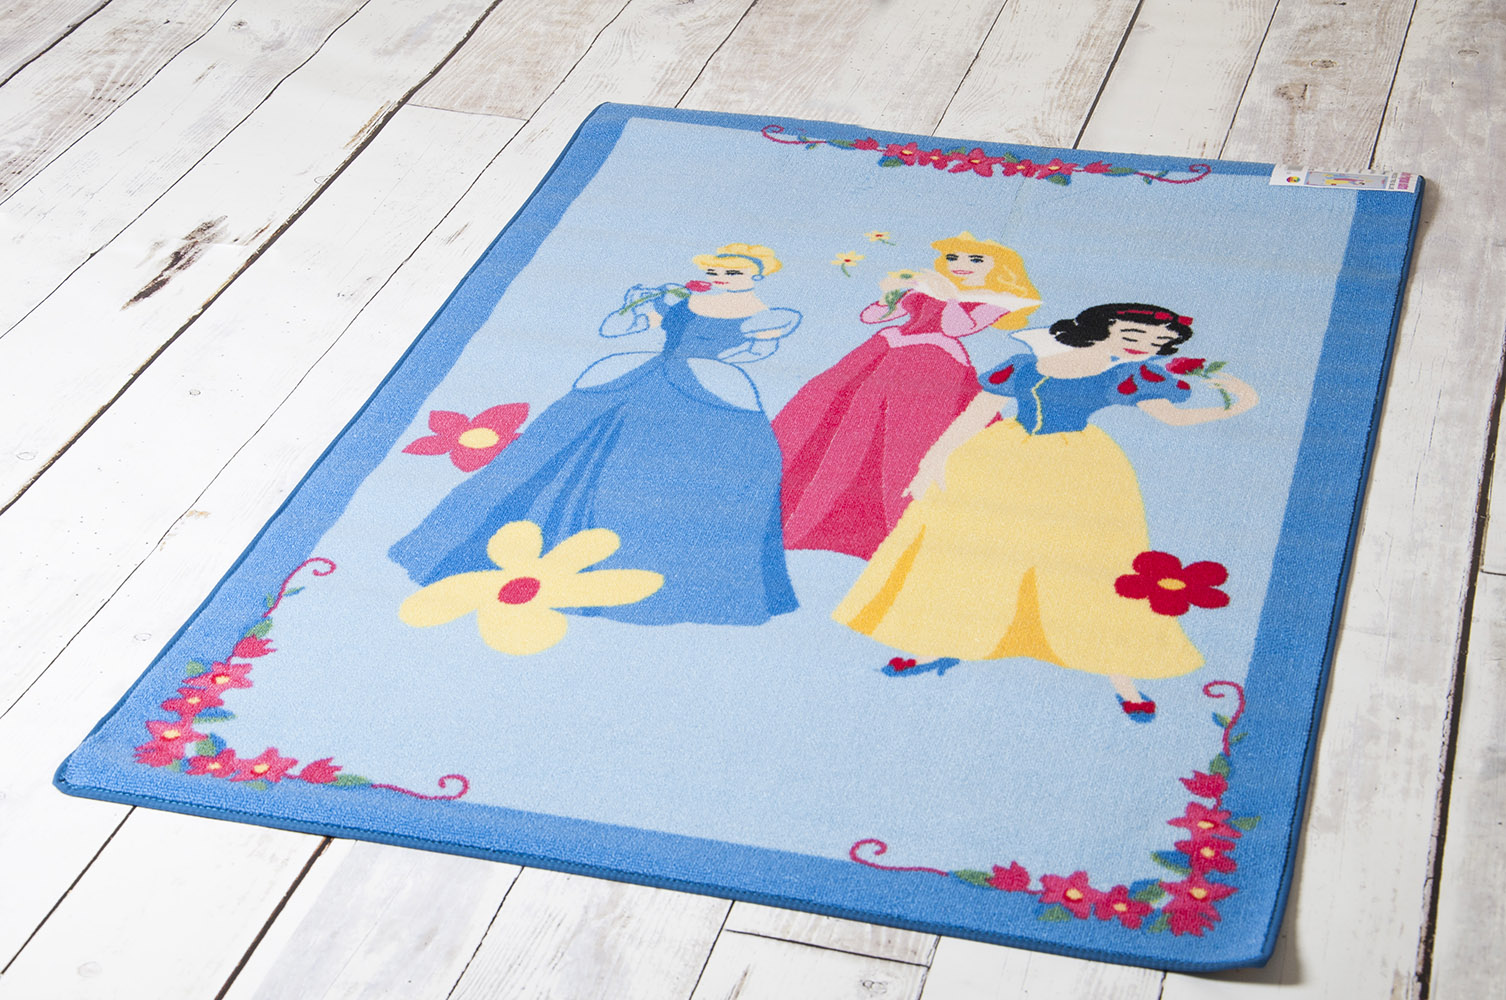 Official Disney Childrens Rugs In Various Designs Thumbnail 1